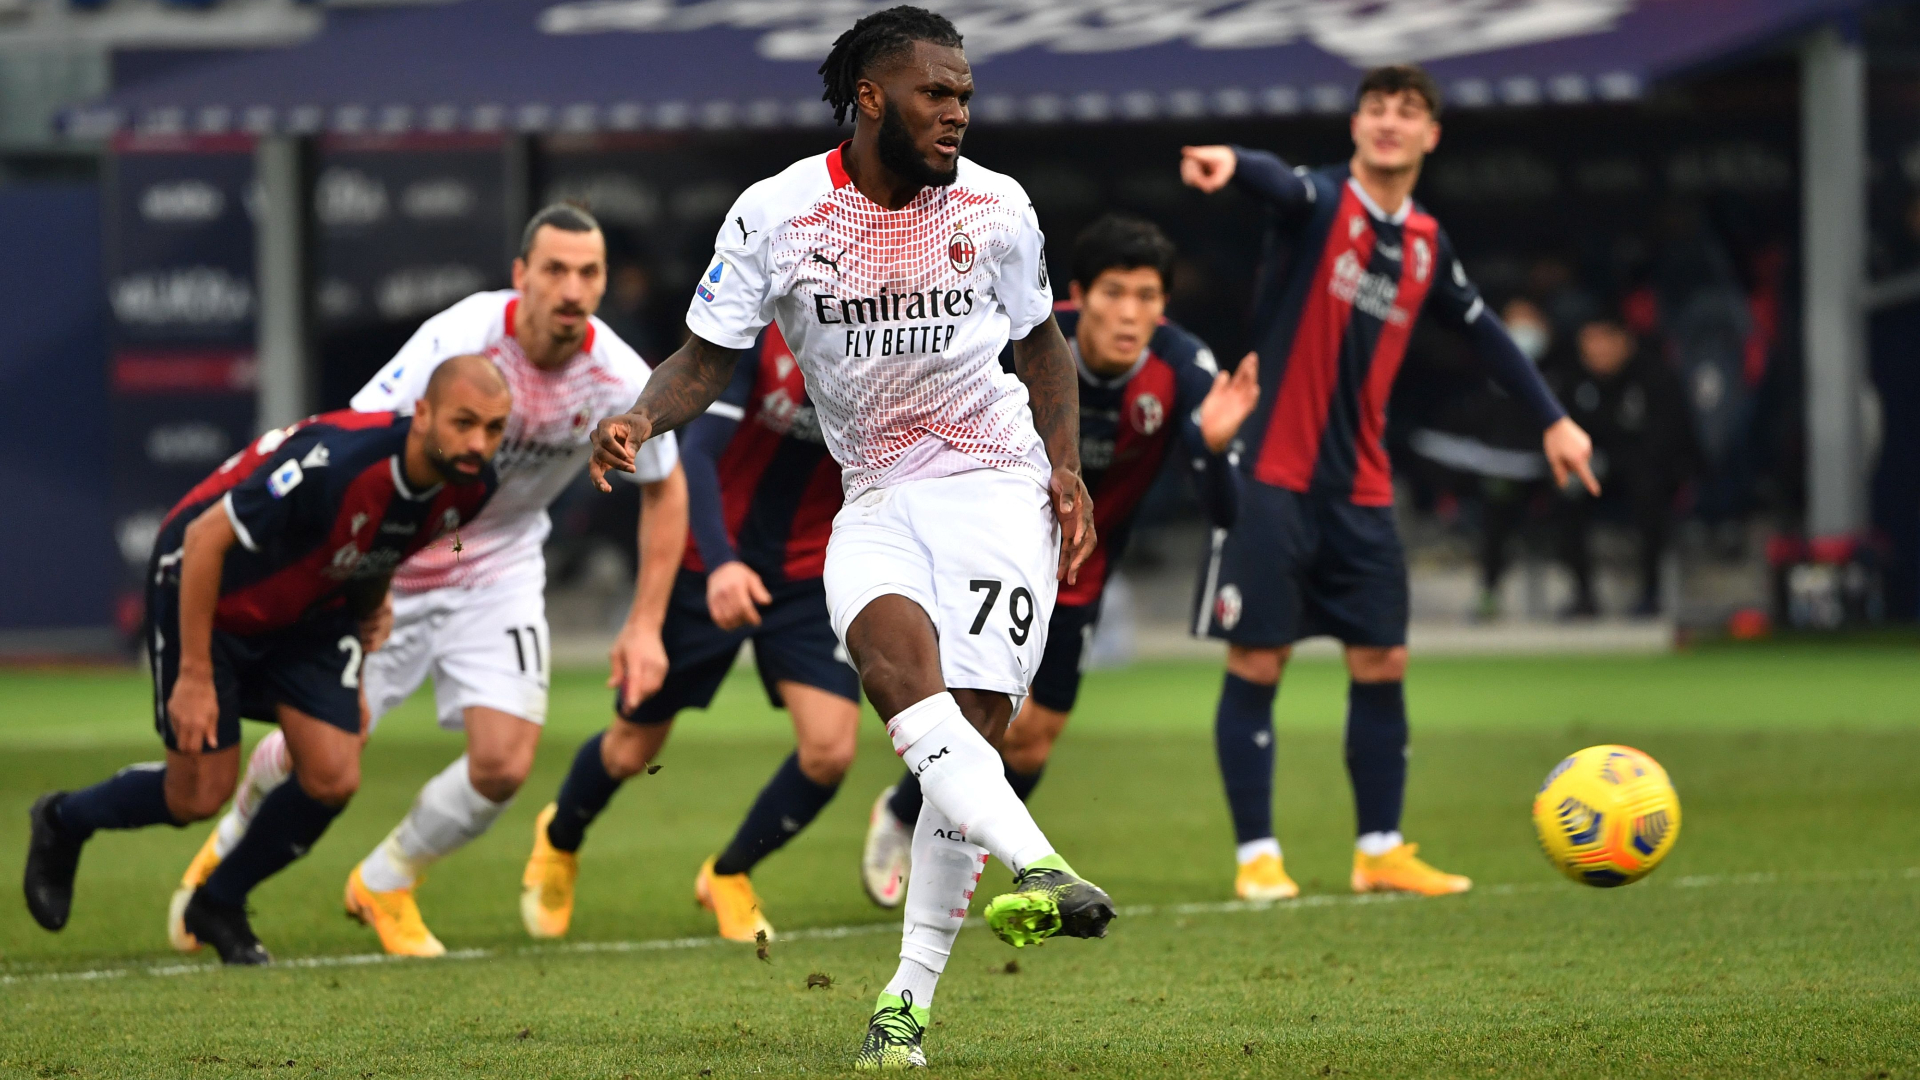 Kessie scores as AC Milan secure victory over Bologna